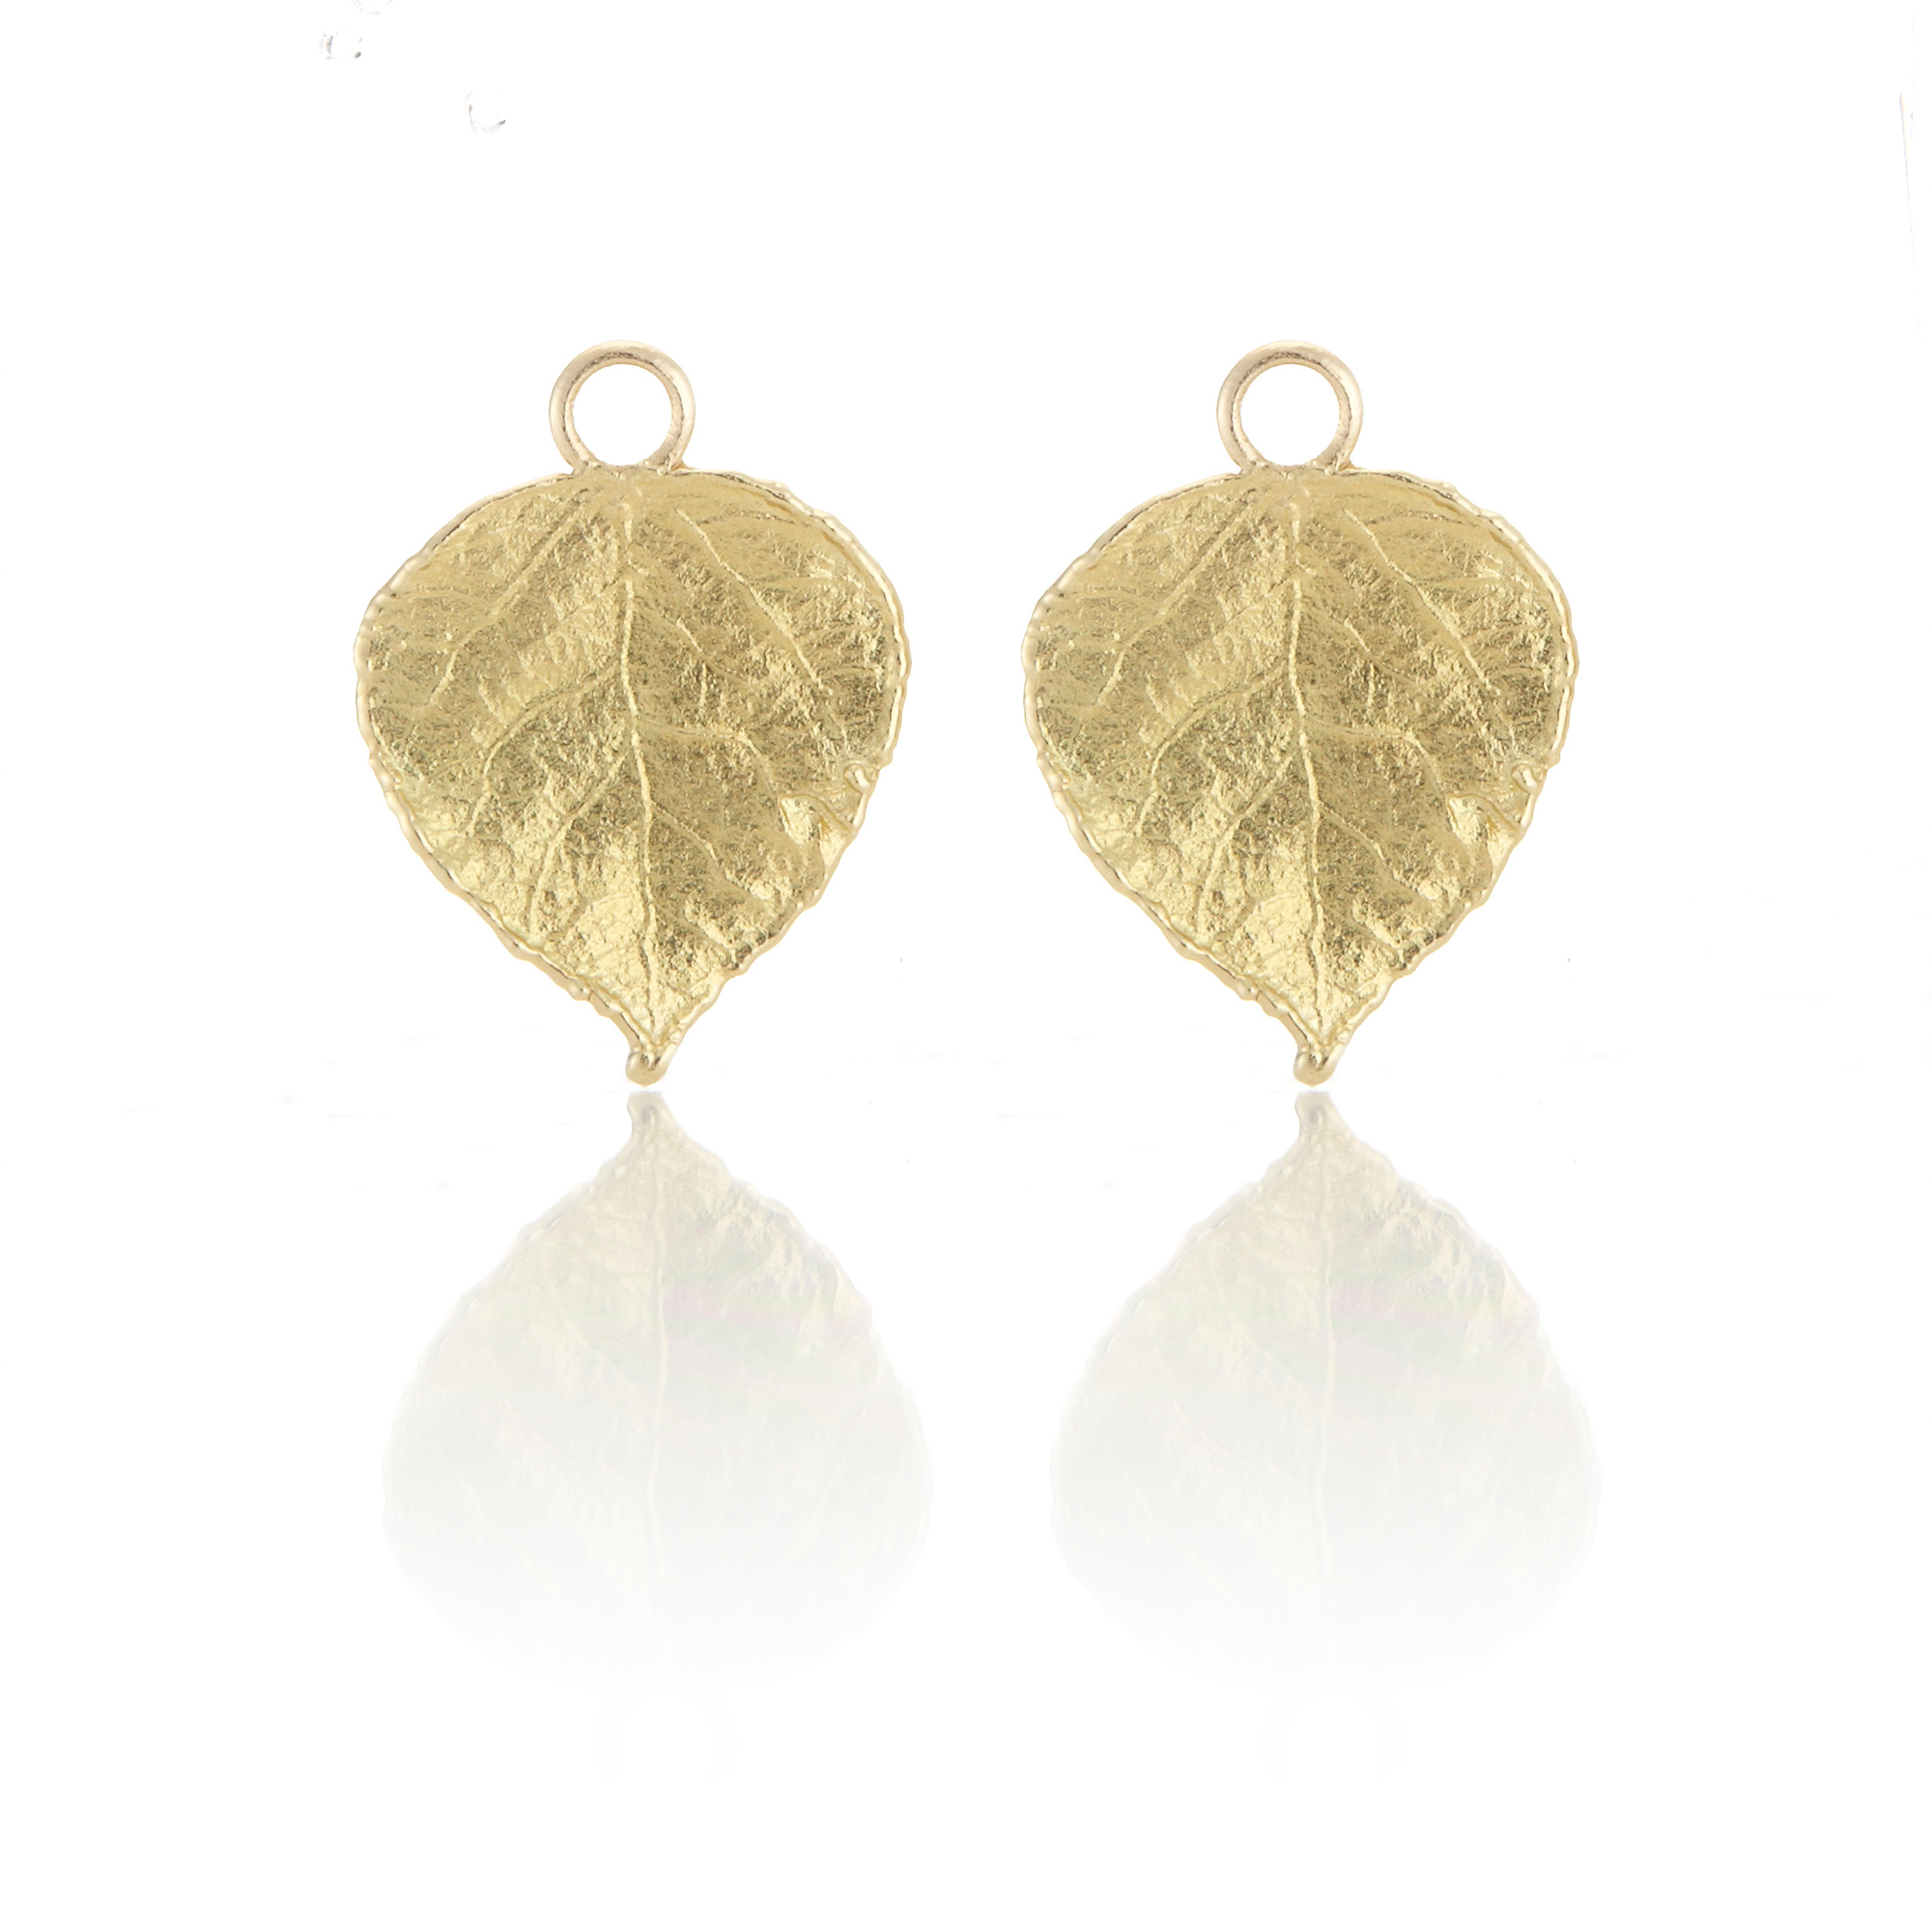 Aaron Henry Small Aspen Leaf Earring Charms